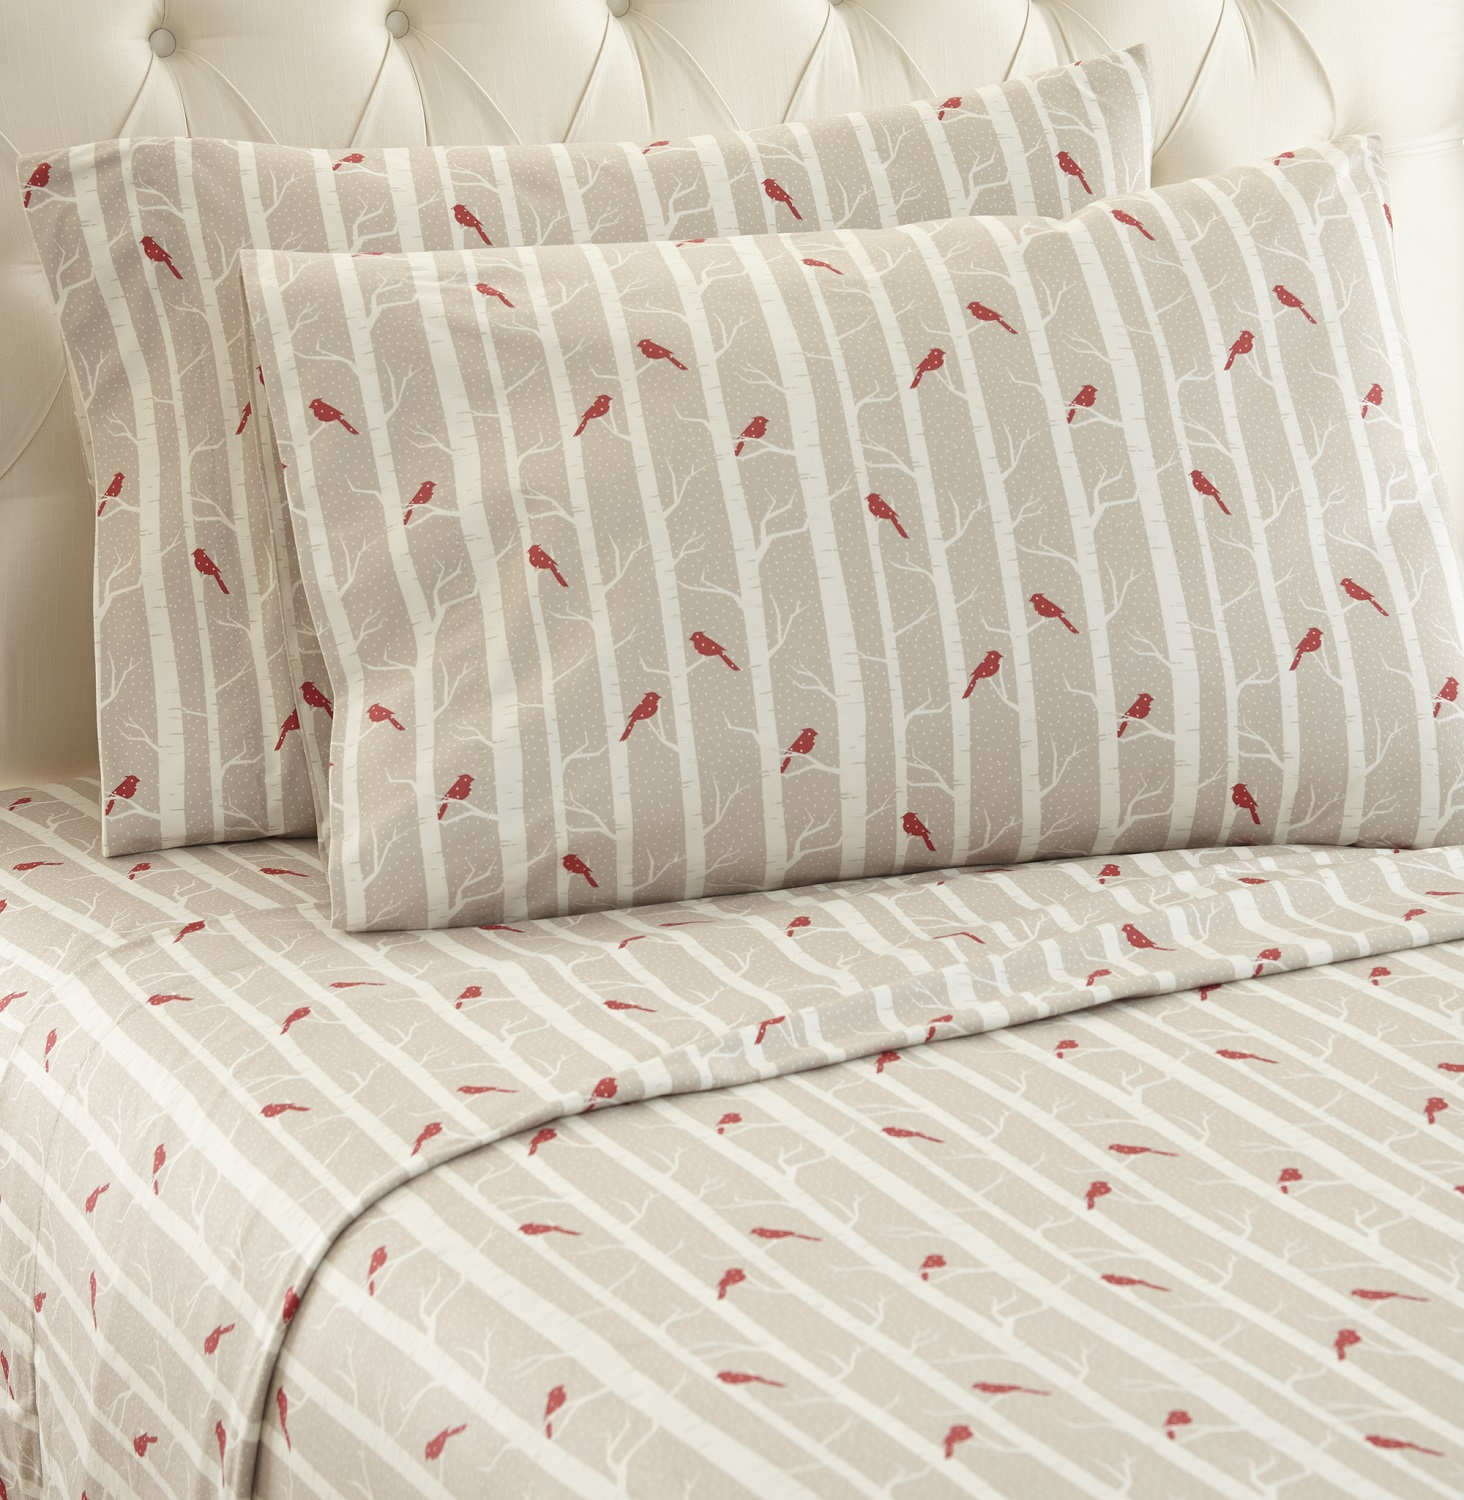 Printed Sheet Sets Cardinal Bird Patterned Micro Flannel Sheets Micro Flannel Bedding